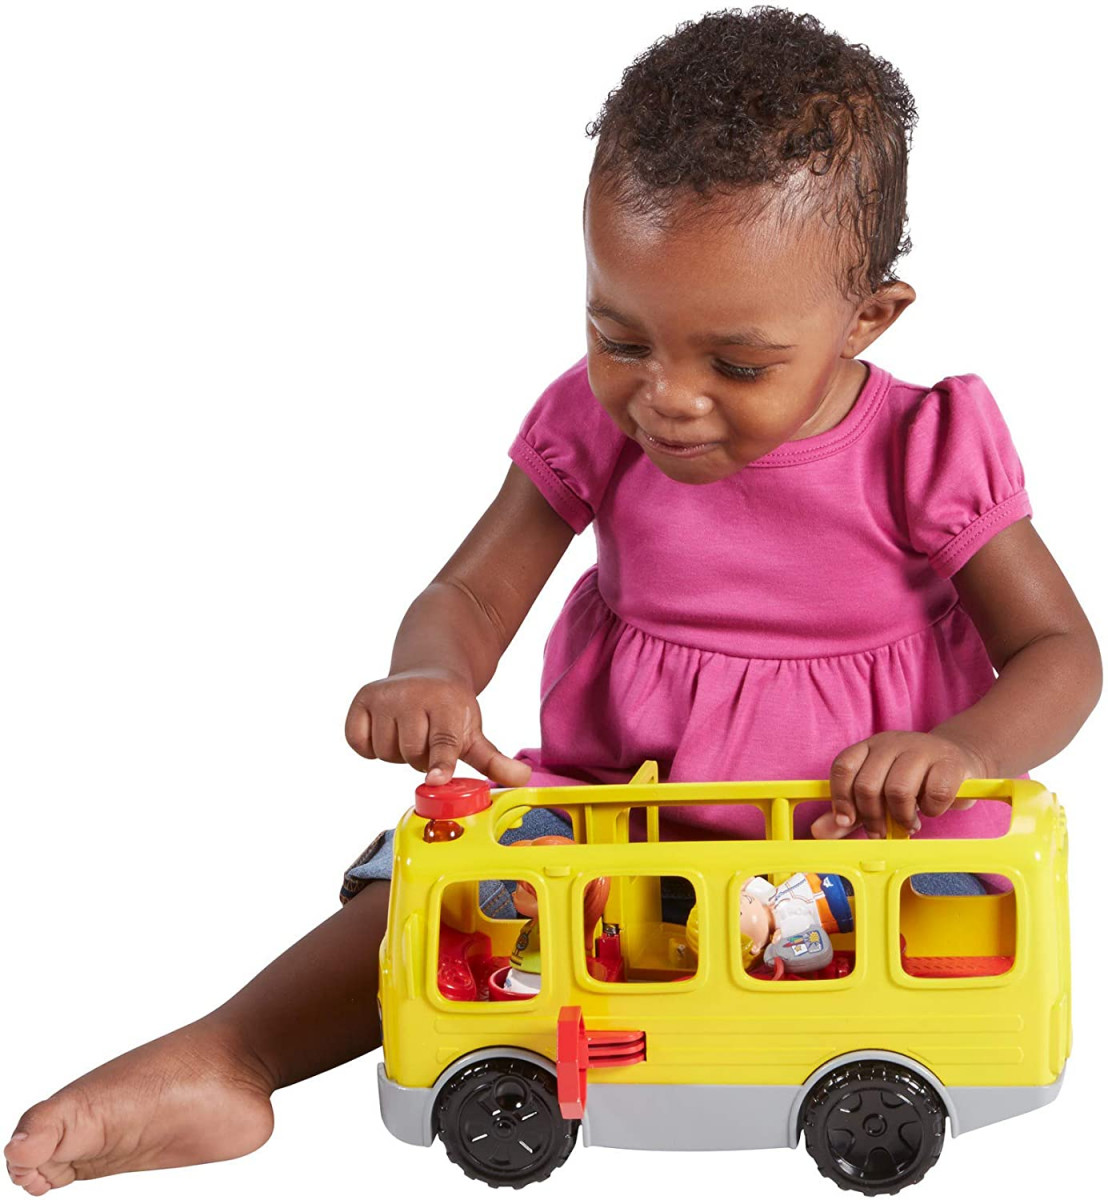 34% Off Fisher-Price Little People Sit with Me School Bus Vehicle! Was $14.99!